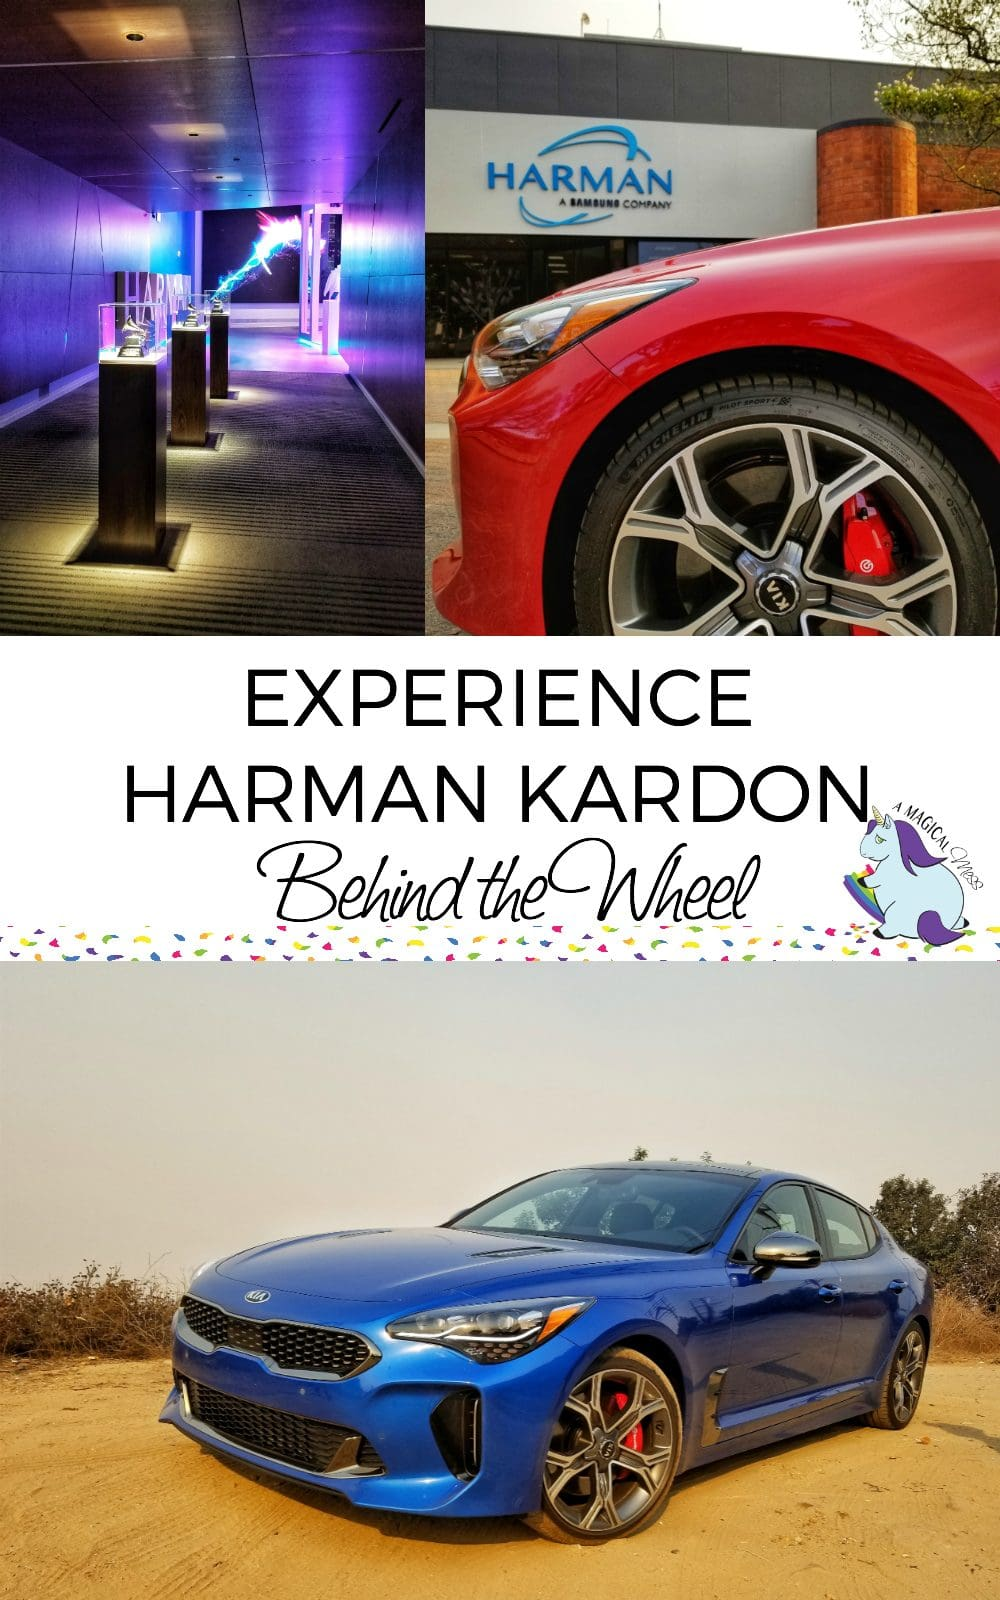 The Science and Sensuality of Sound - Harman Kardon Car Speakers #harmankardon #HKinsider #HKxKia #ad